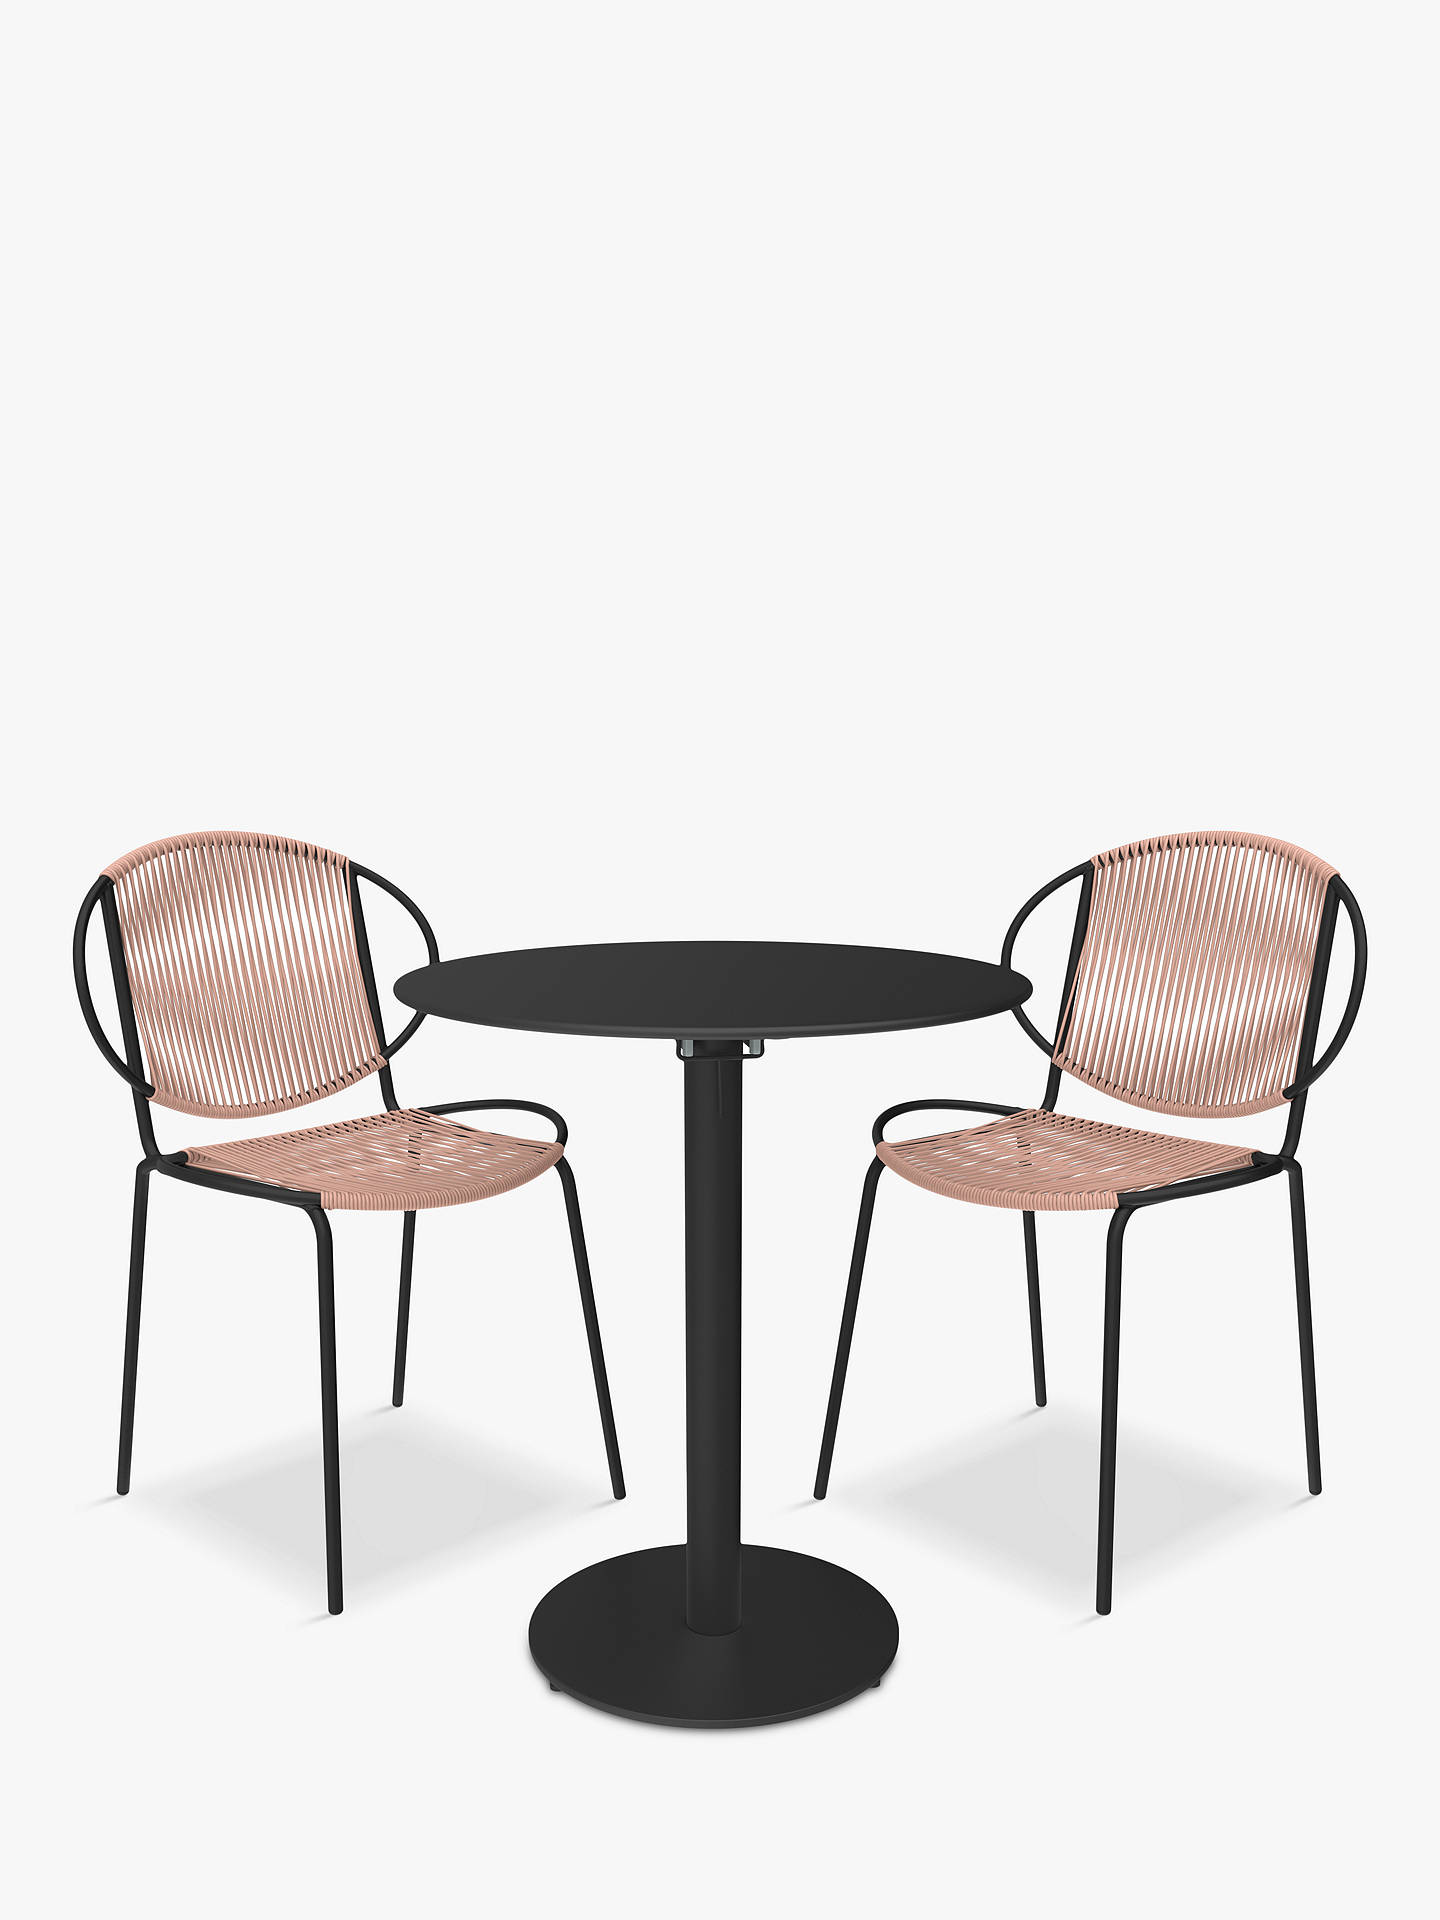 Buy John Lewis & Partners Ellipse 2-Seat Garden Bistro Table & Chairs, Black/Plaster Online at johnlewis.com